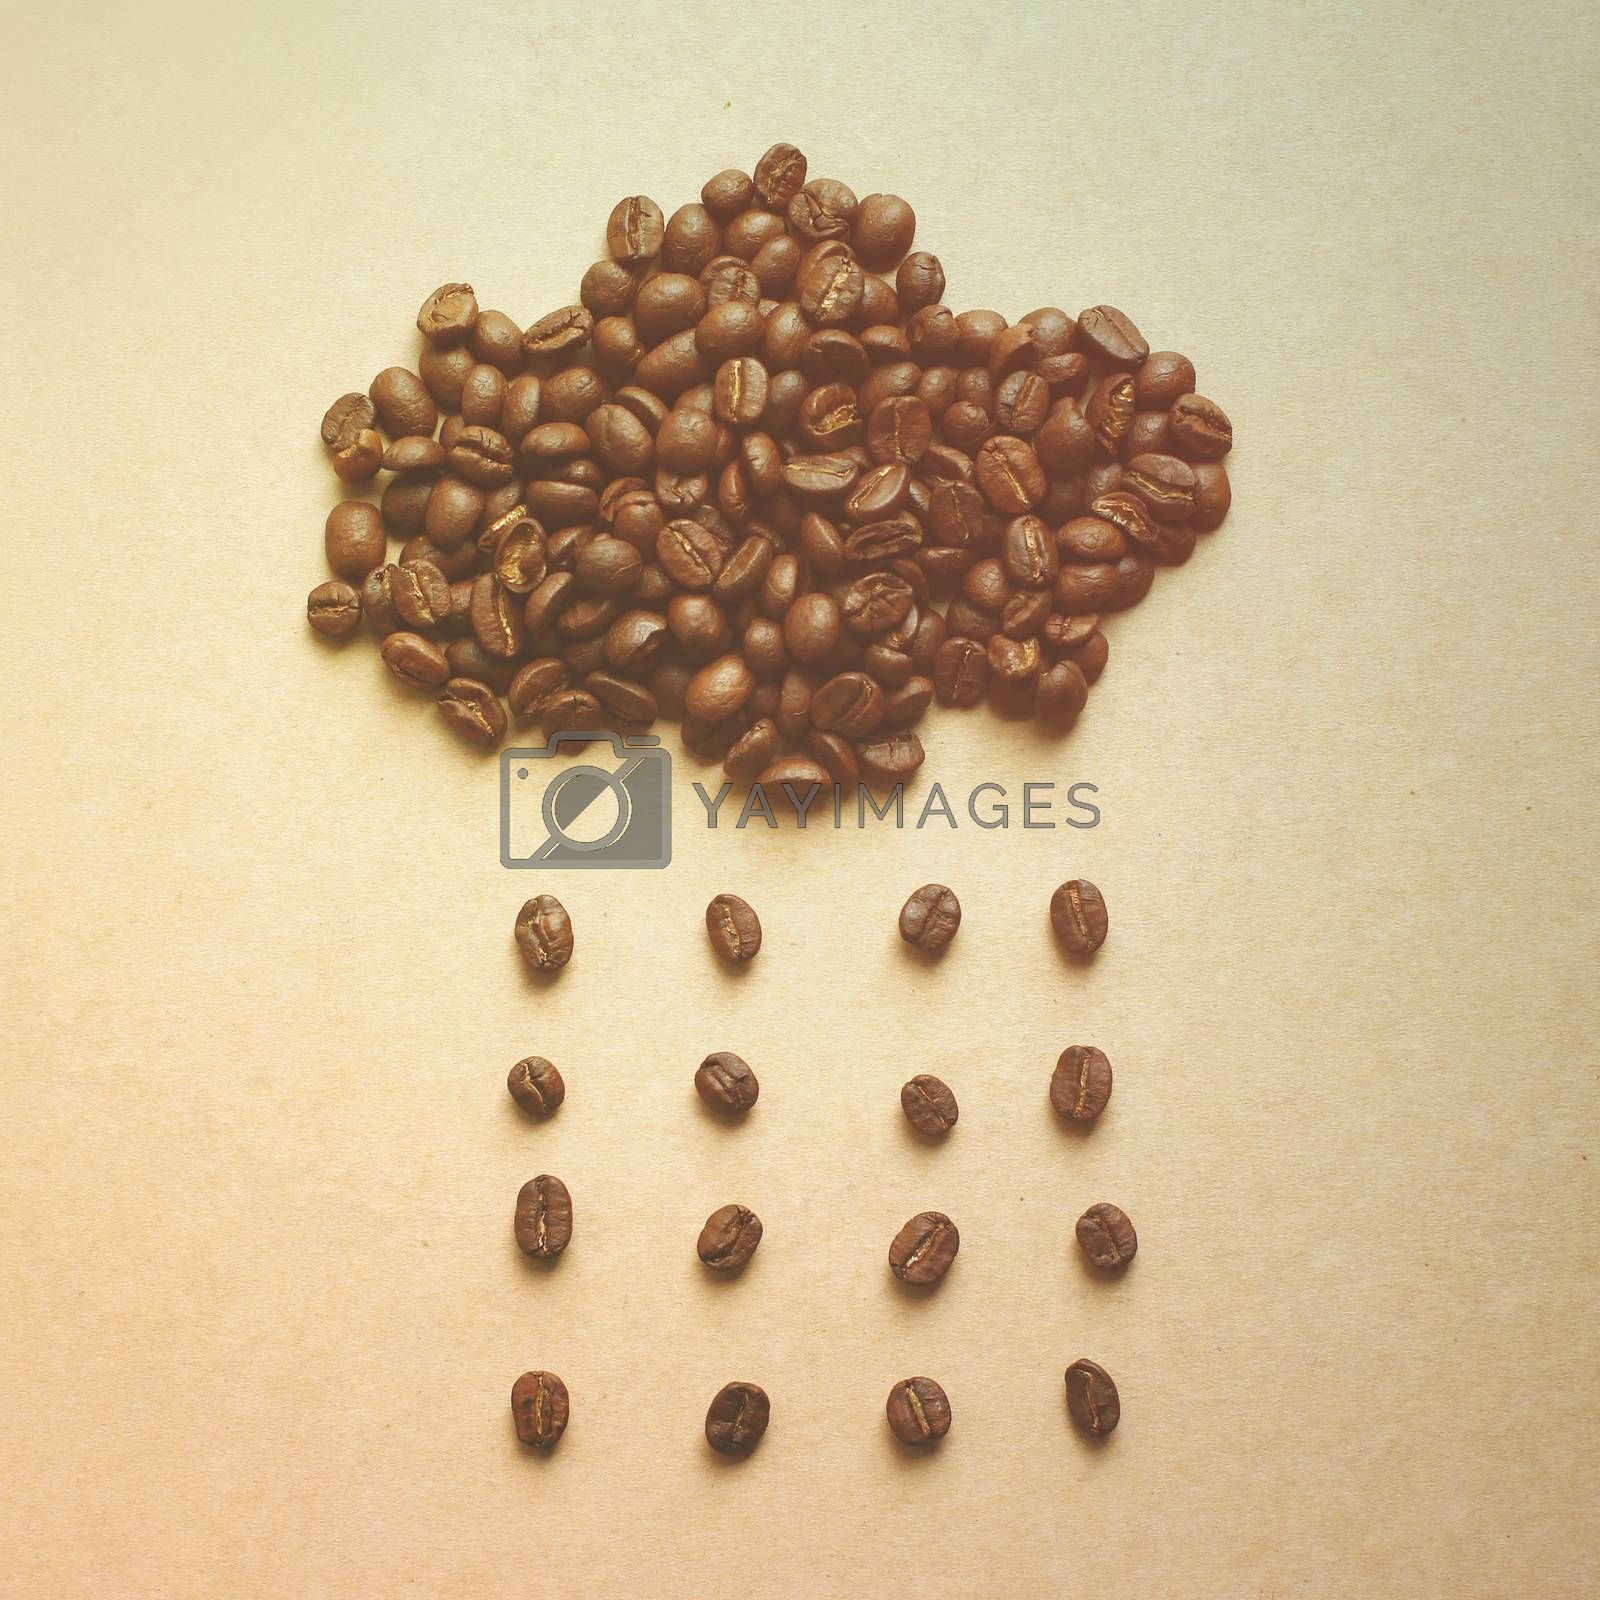 Cloud and rain from coffee beans with retro filter effect